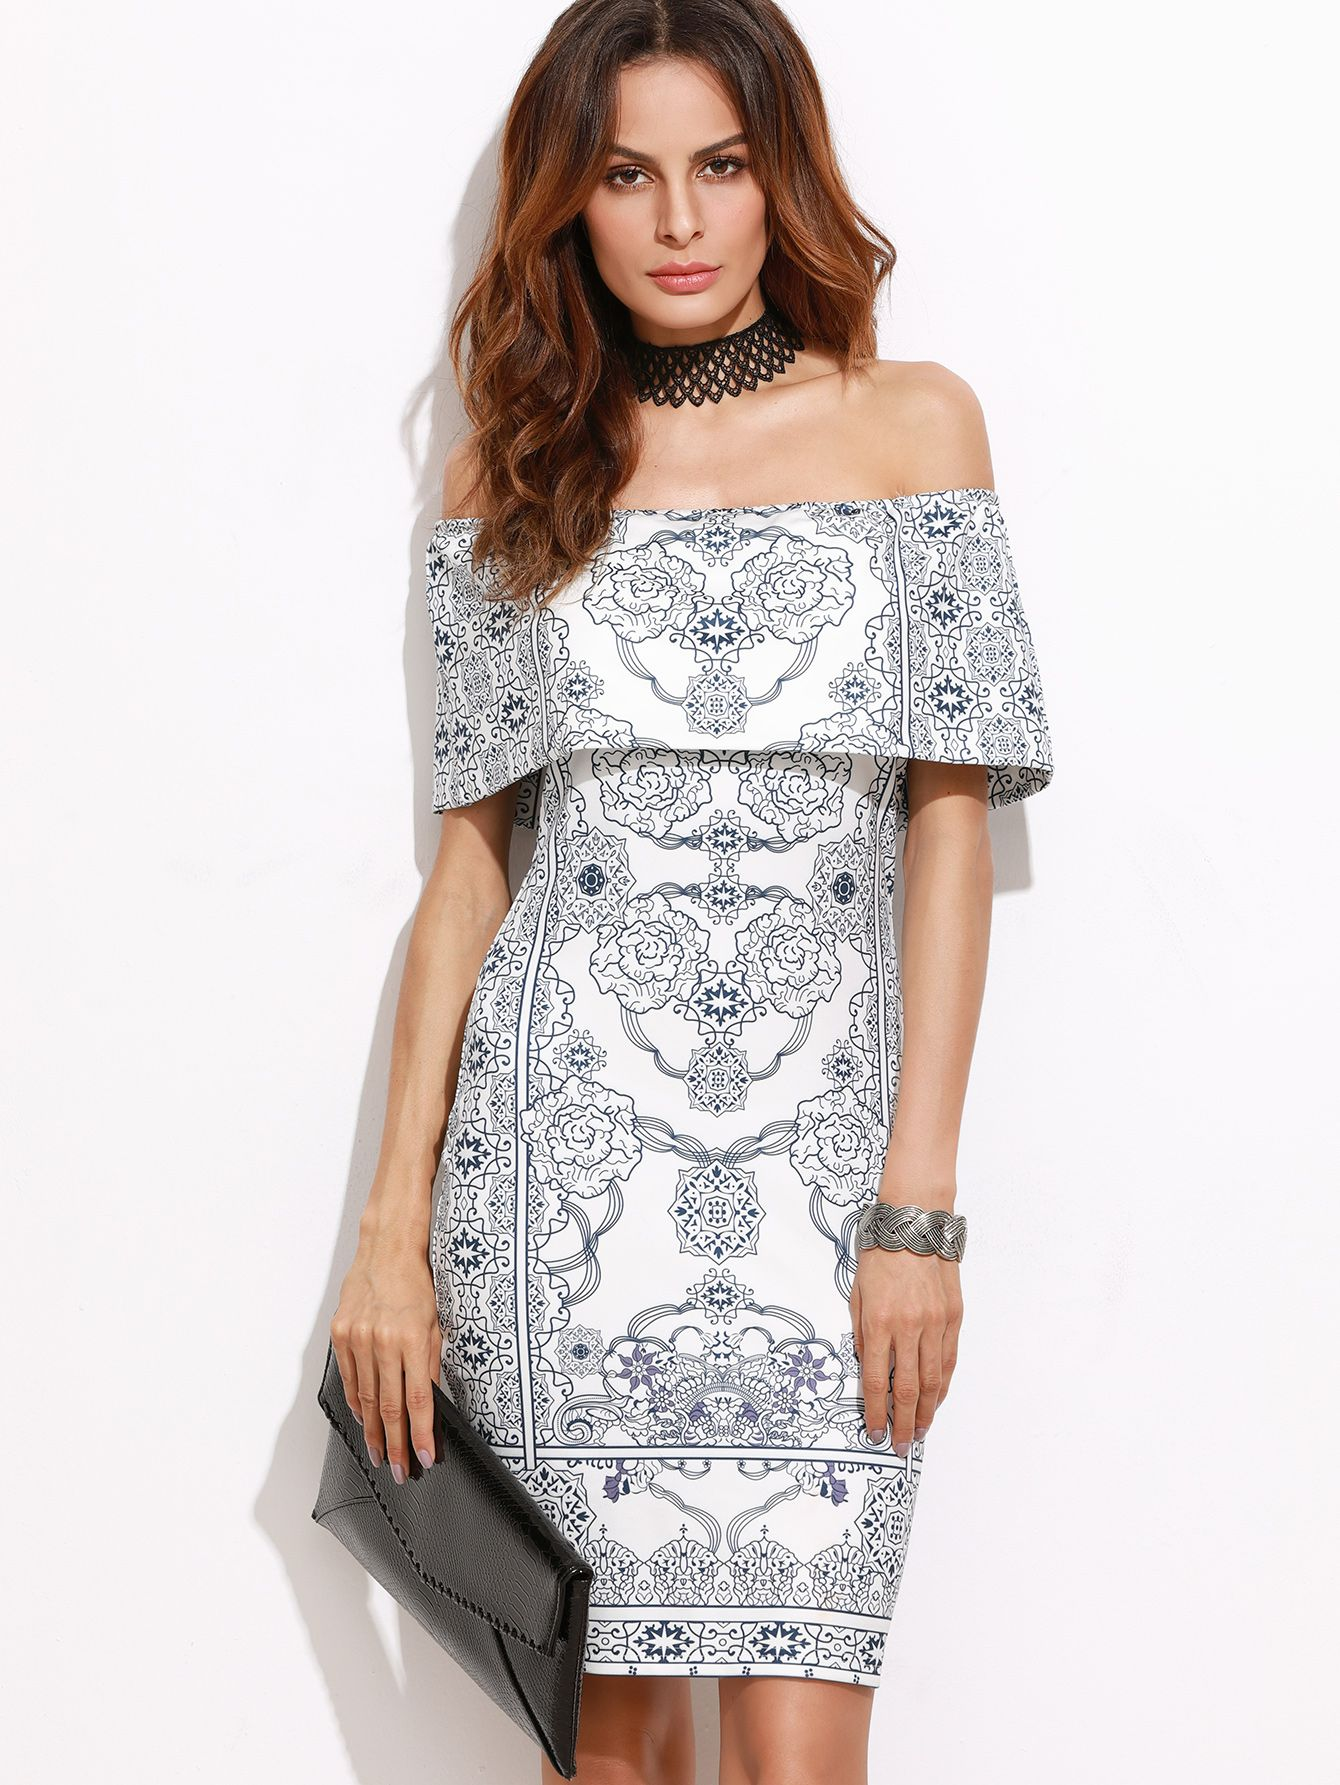 Buy it now white vintage print foldover off the shoulder bodycon